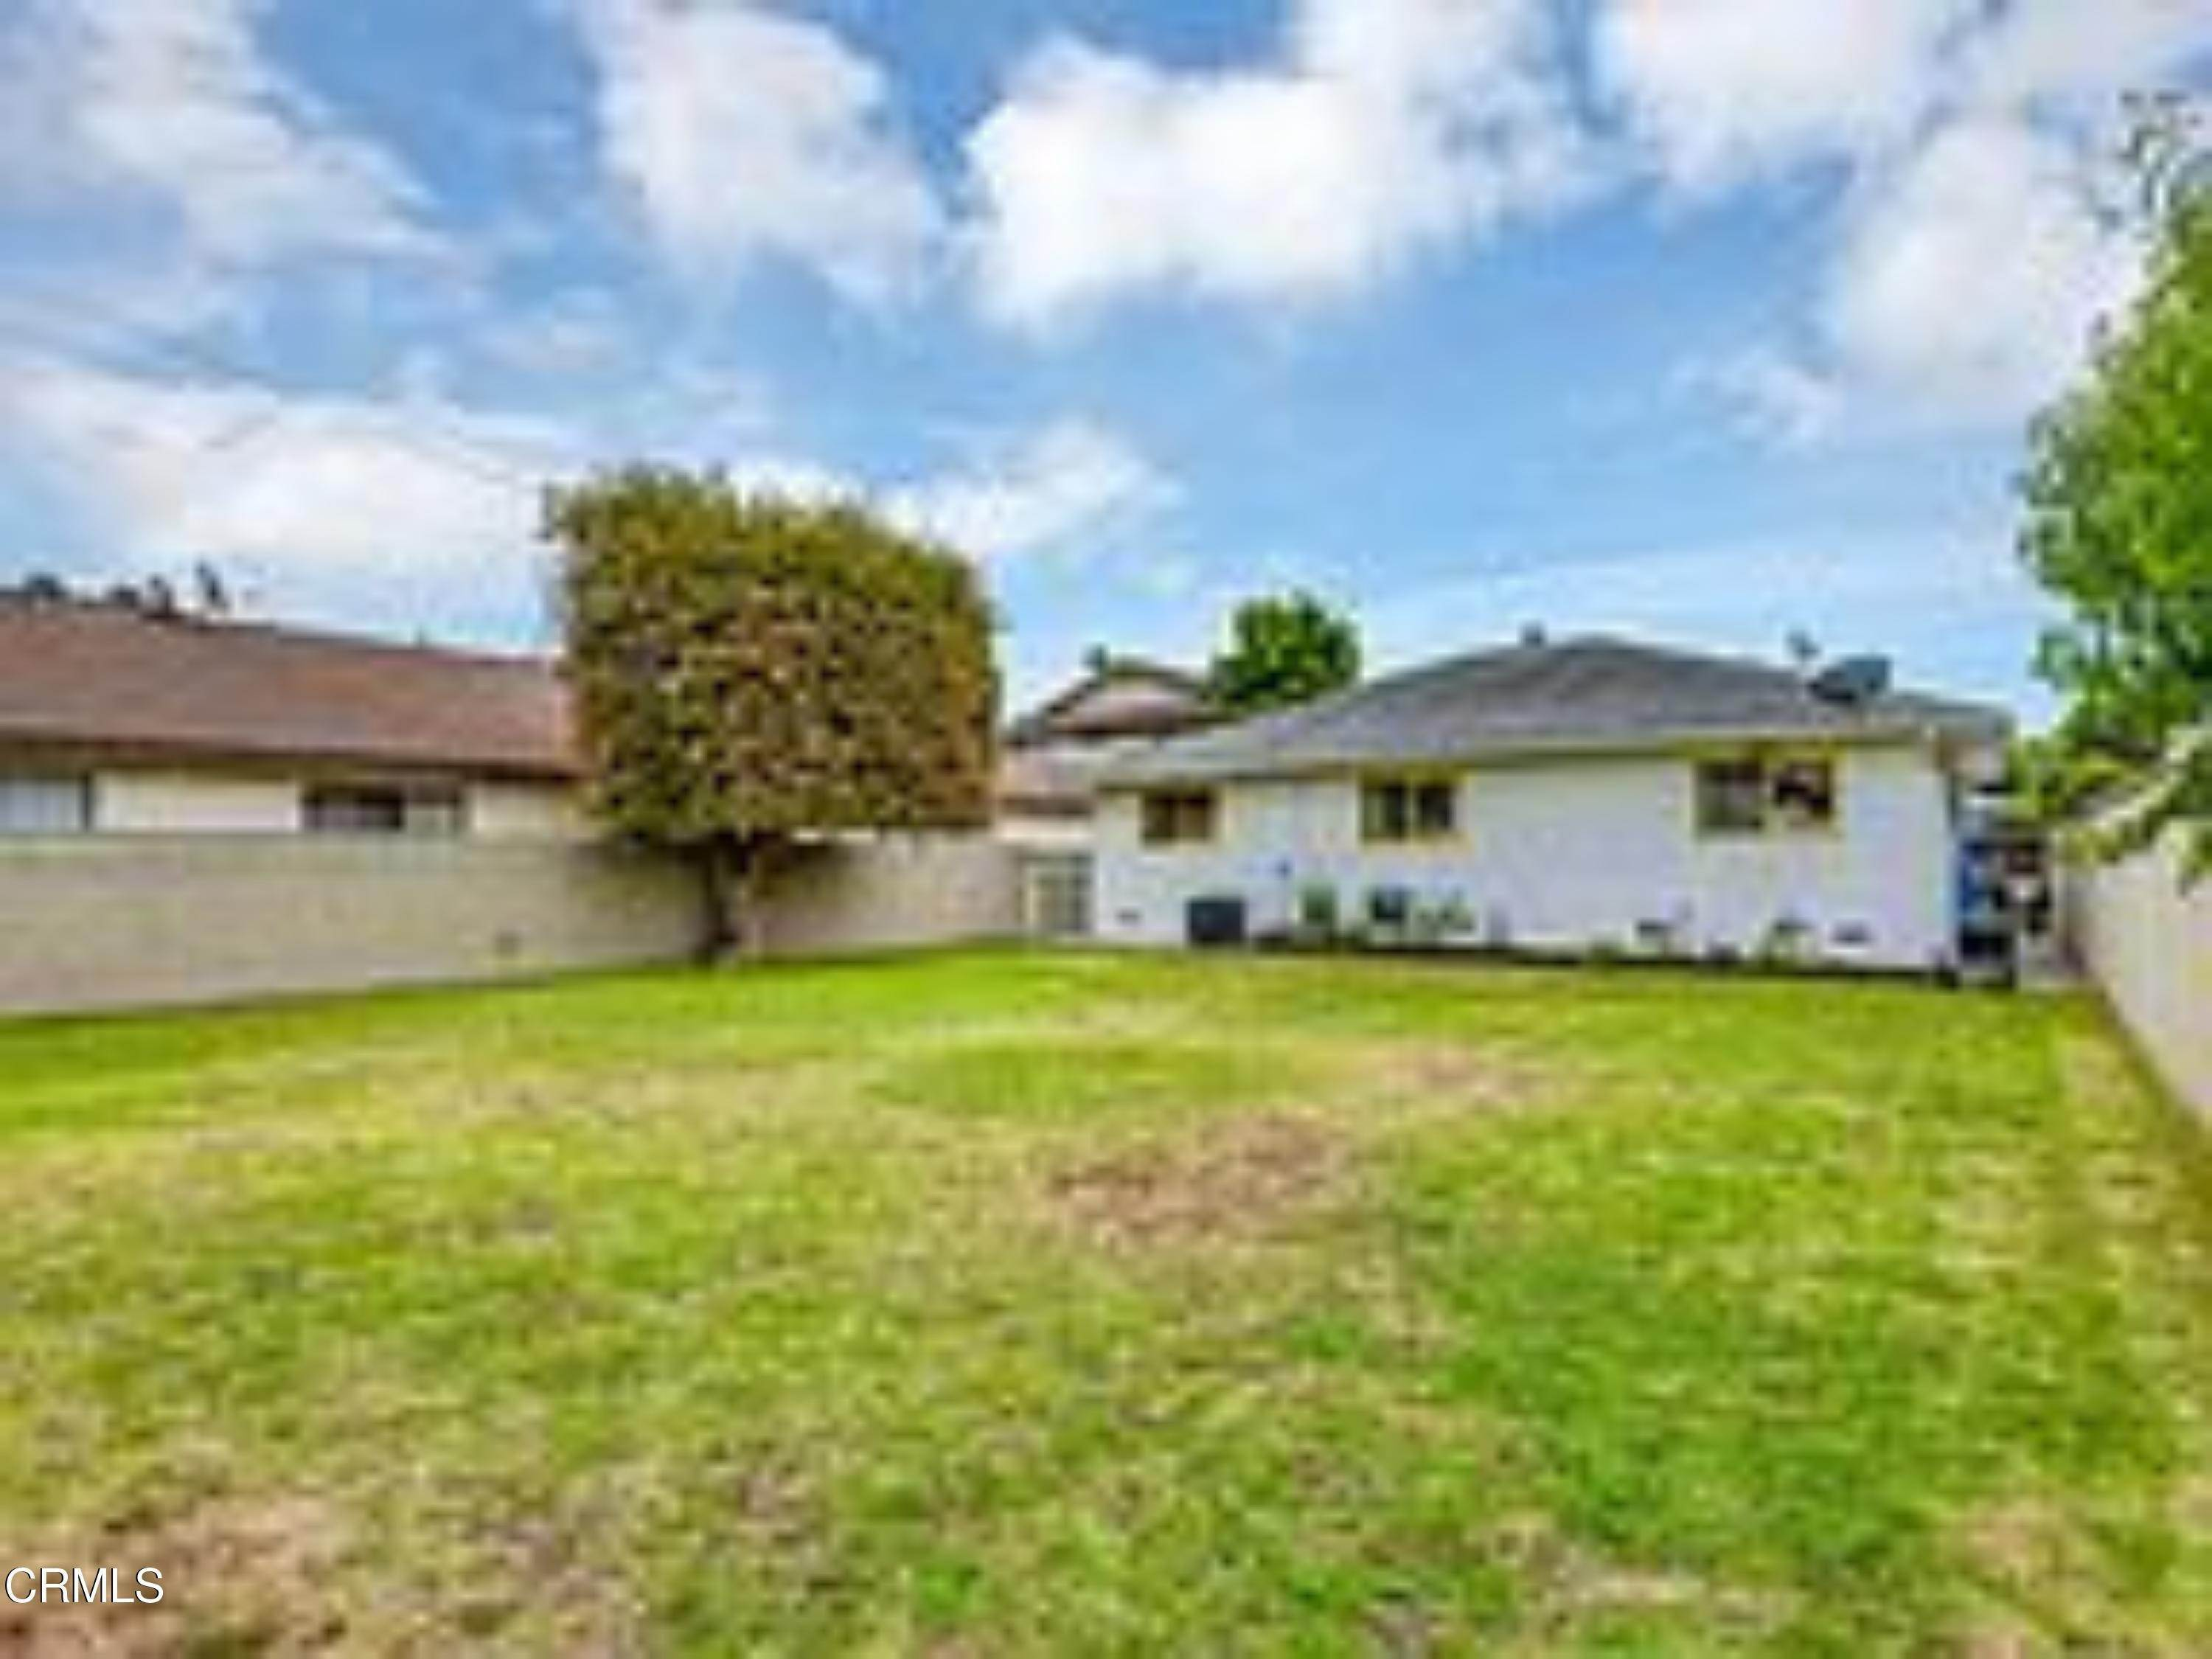 42. Single Family Homes for Sale at 4203 West 141st Street Hawthorne, California 90250 United States